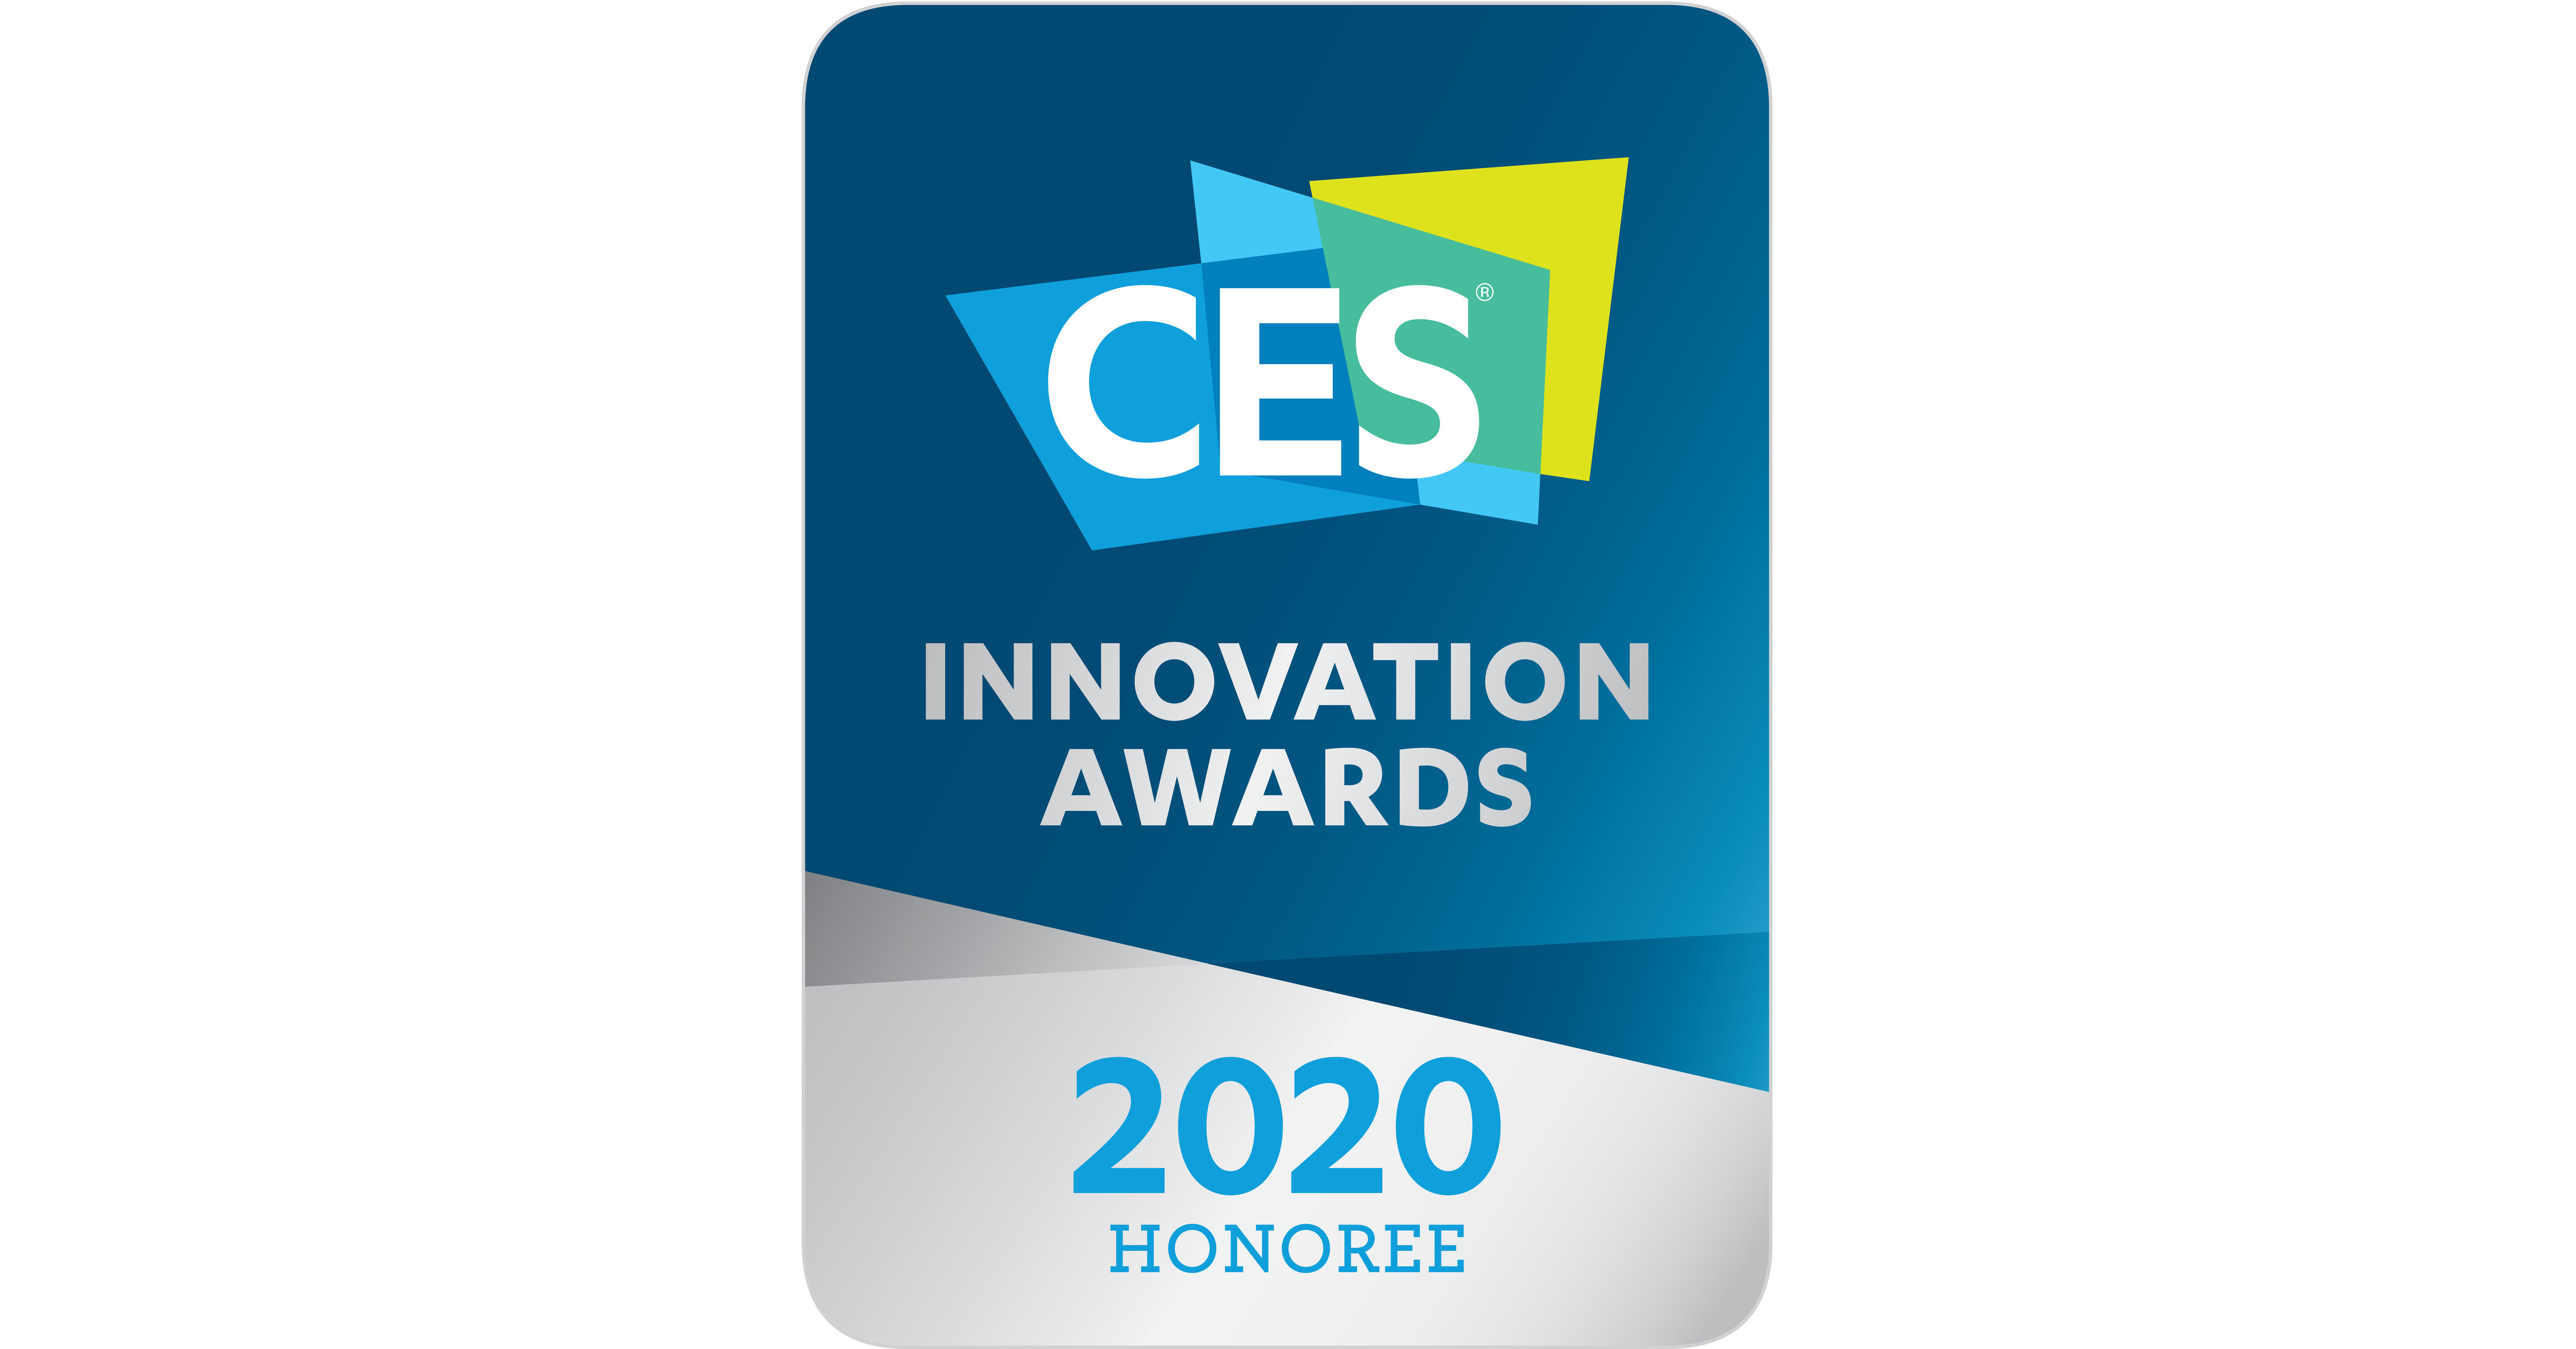 Best Of Ces 2020.Lg Honored With 2020 Ces Innovation Awards